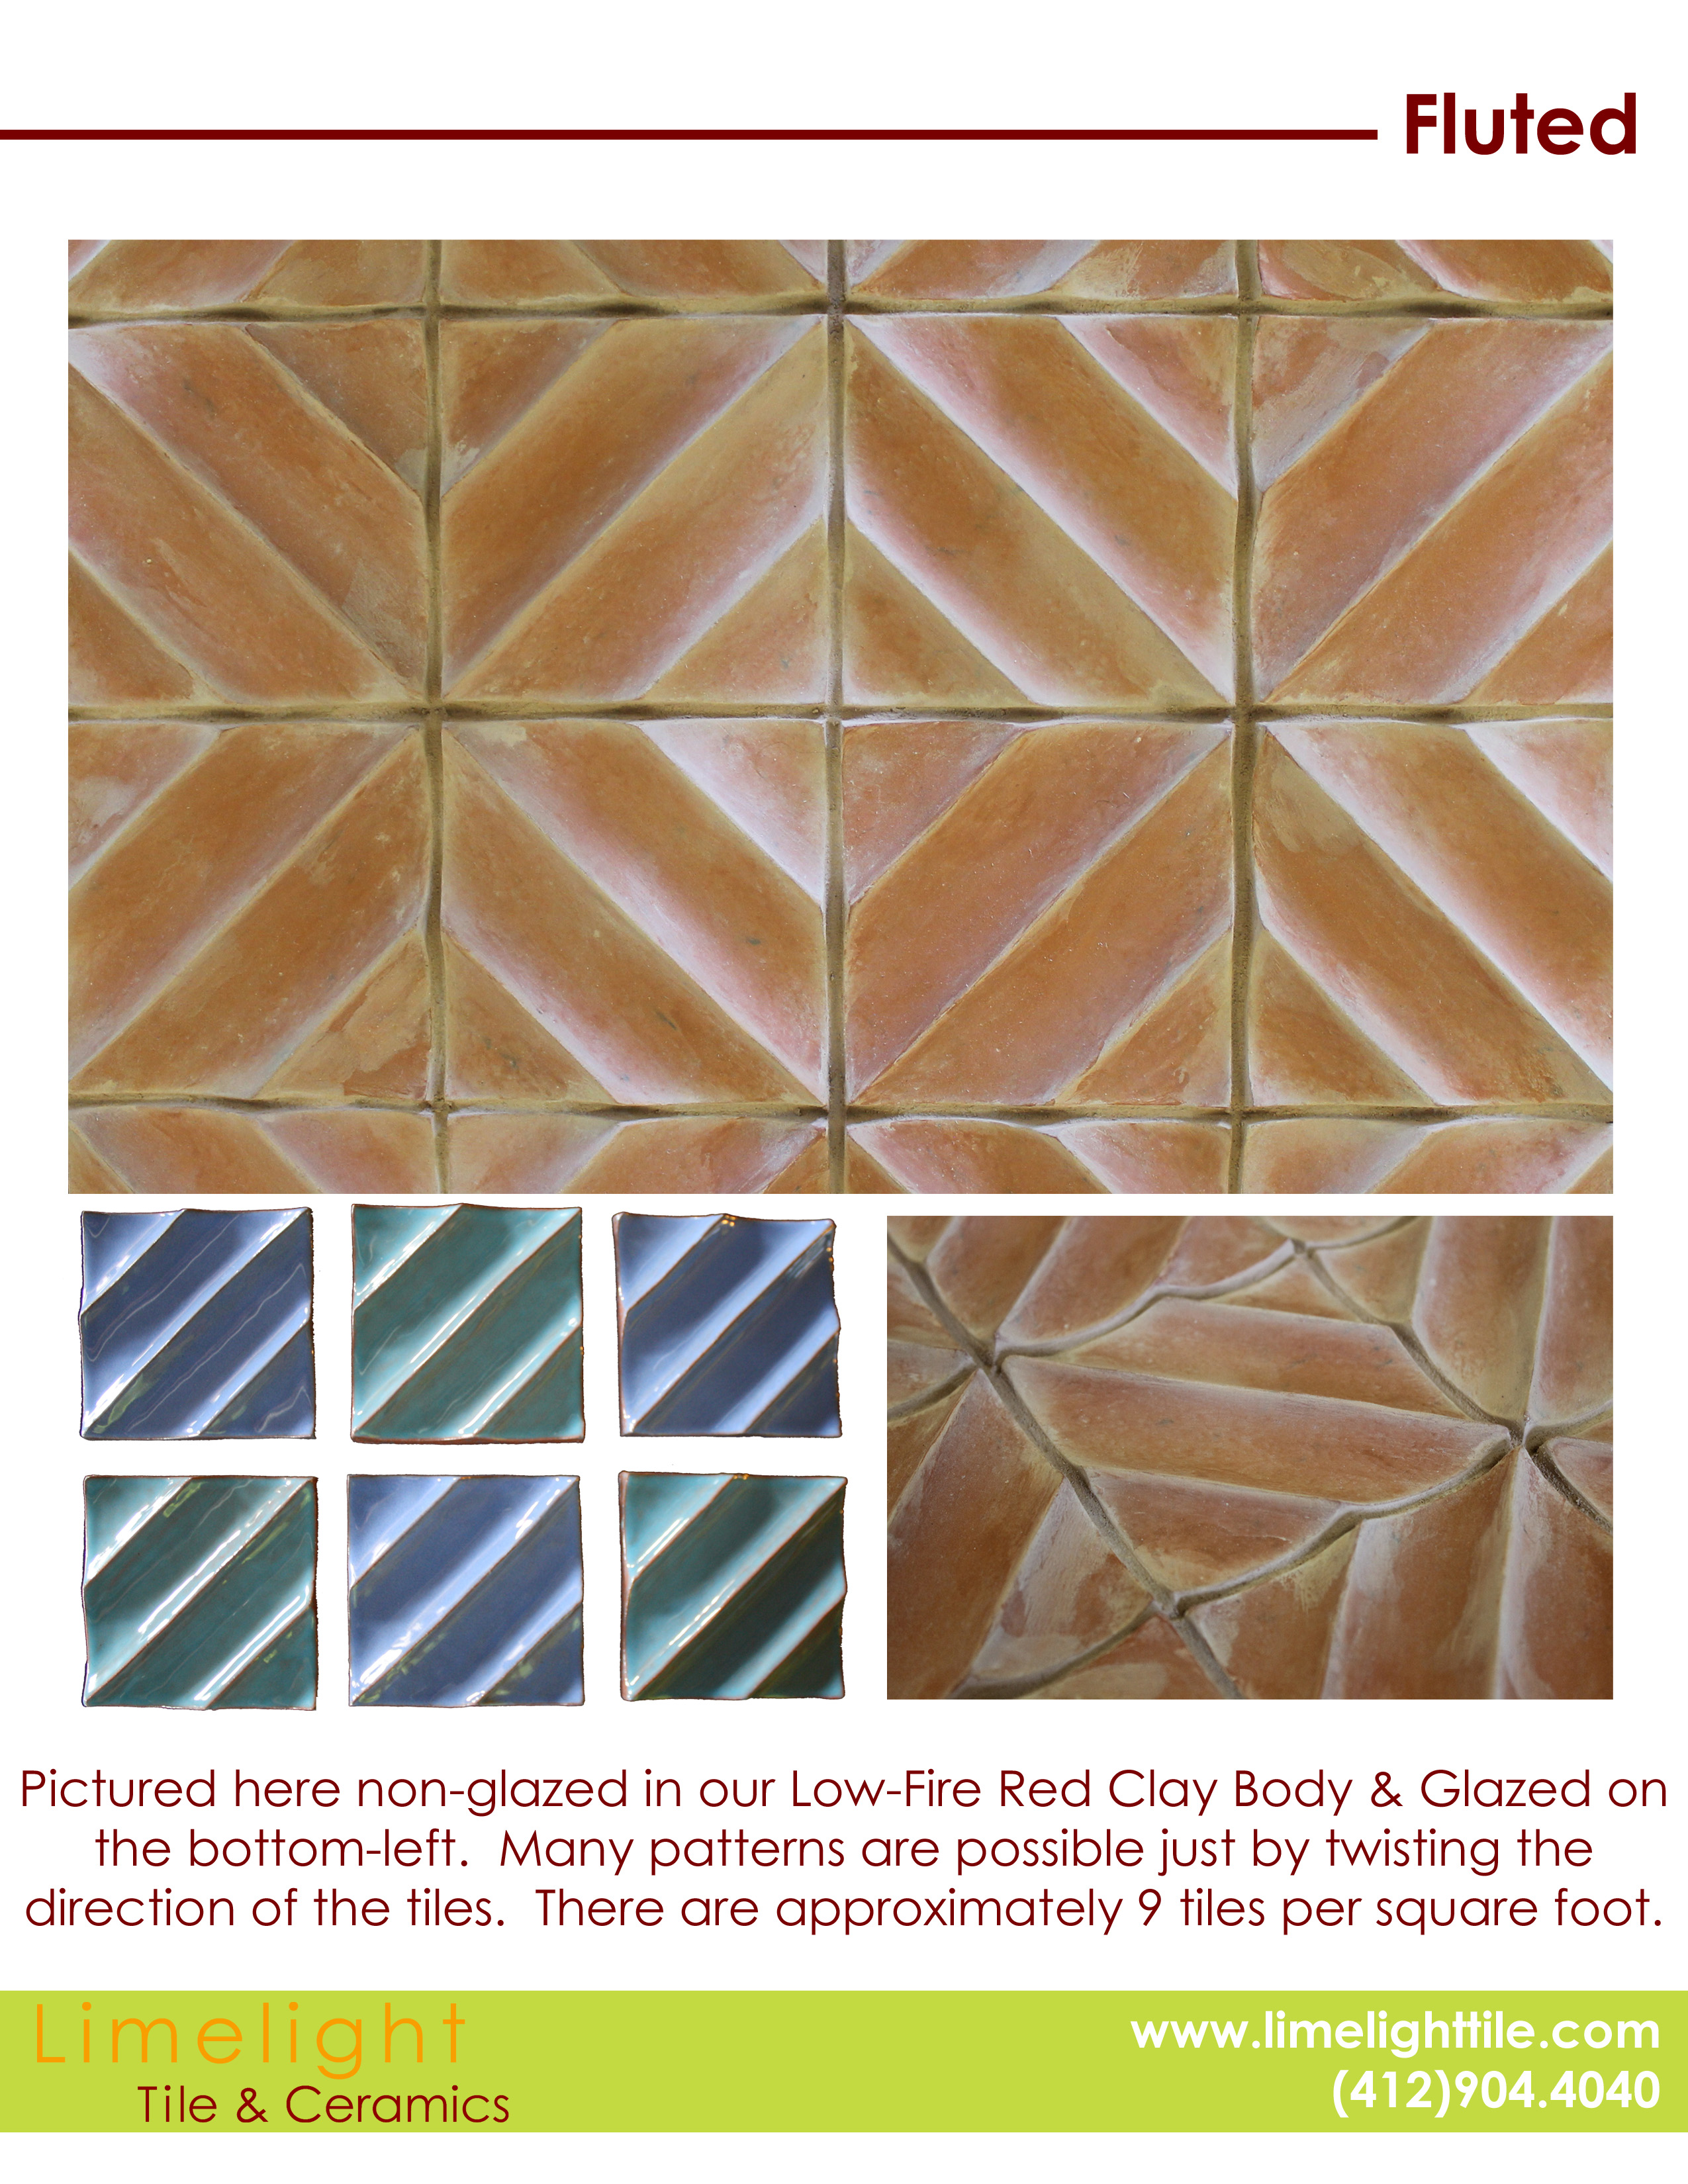 Personalize Our Ceramic Tile Patterns Fluted Limelighttile